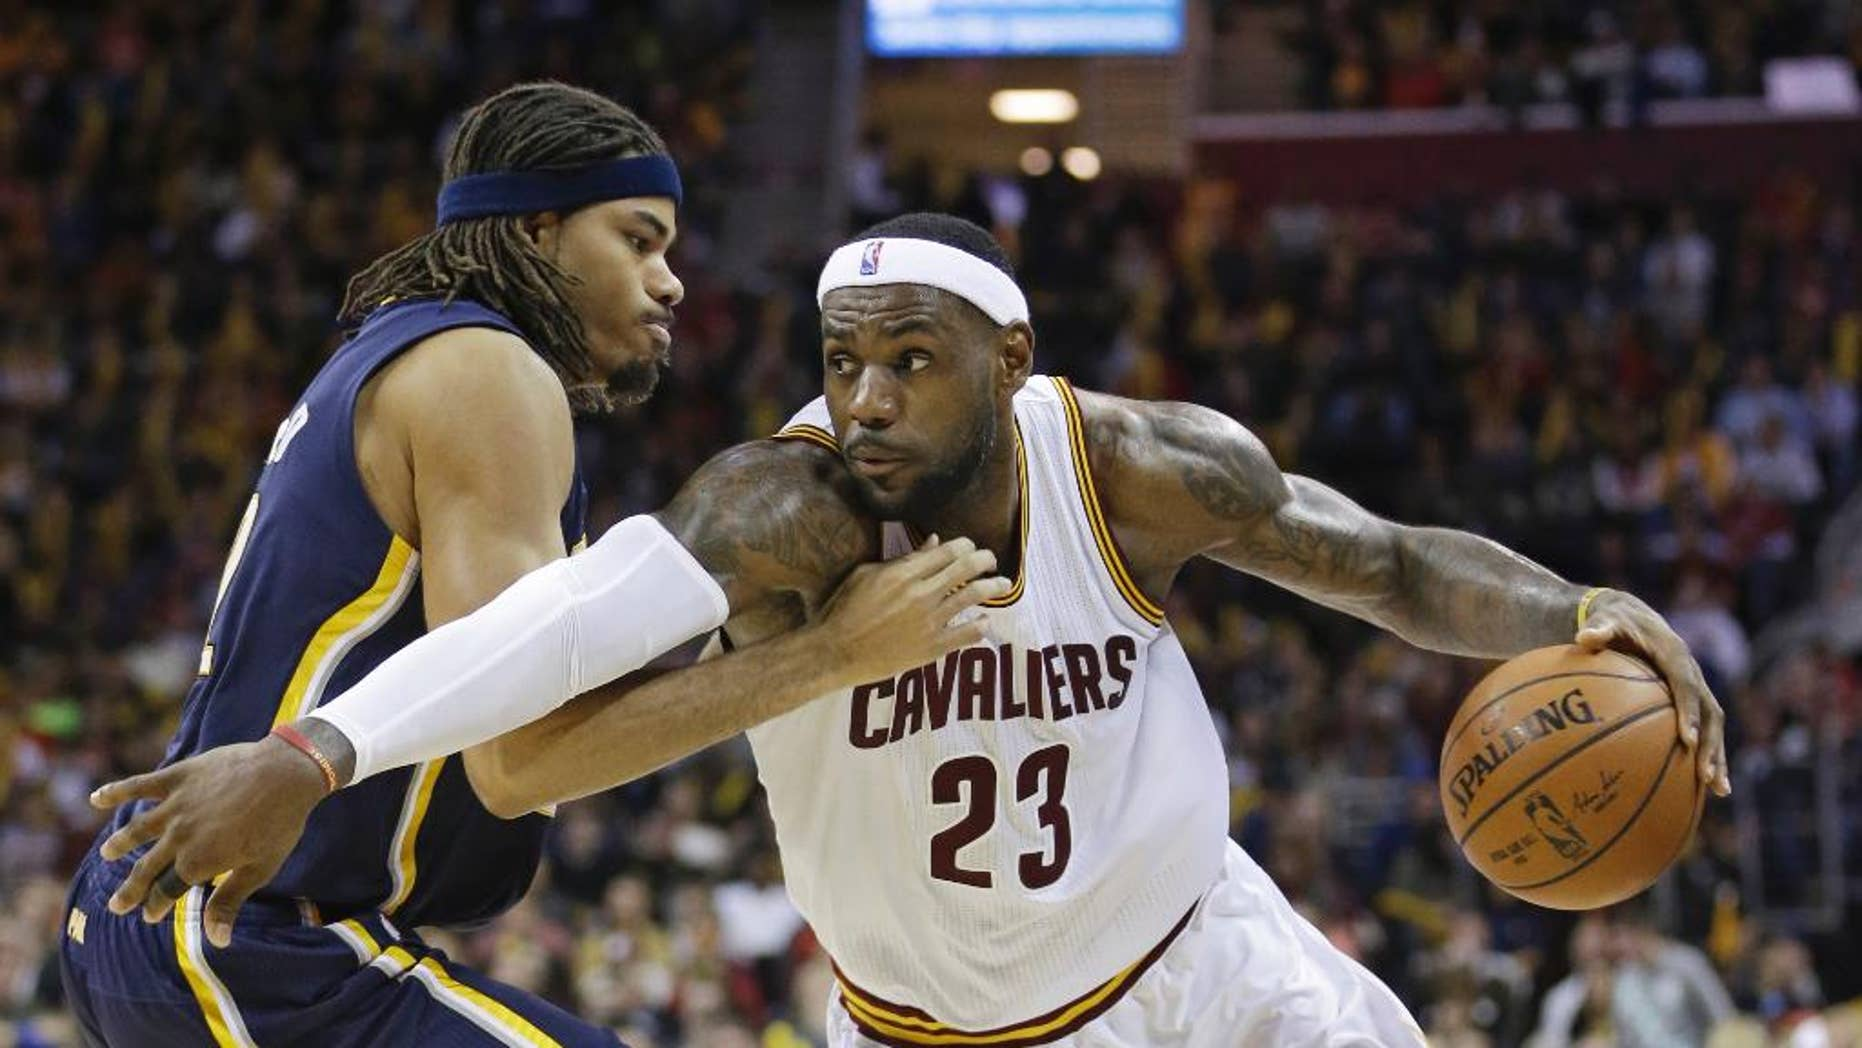 Cleveland Cavaliers' LeBron James, right, drives past Indiana Pacers' Chris Copeland  during the third quarter of an NBA basketball game Saturday, Nov. 29, 2014, in Cleveland. The Cavaliers defeated the Pacers 109-97. (AP Photo/Tony Dejak)